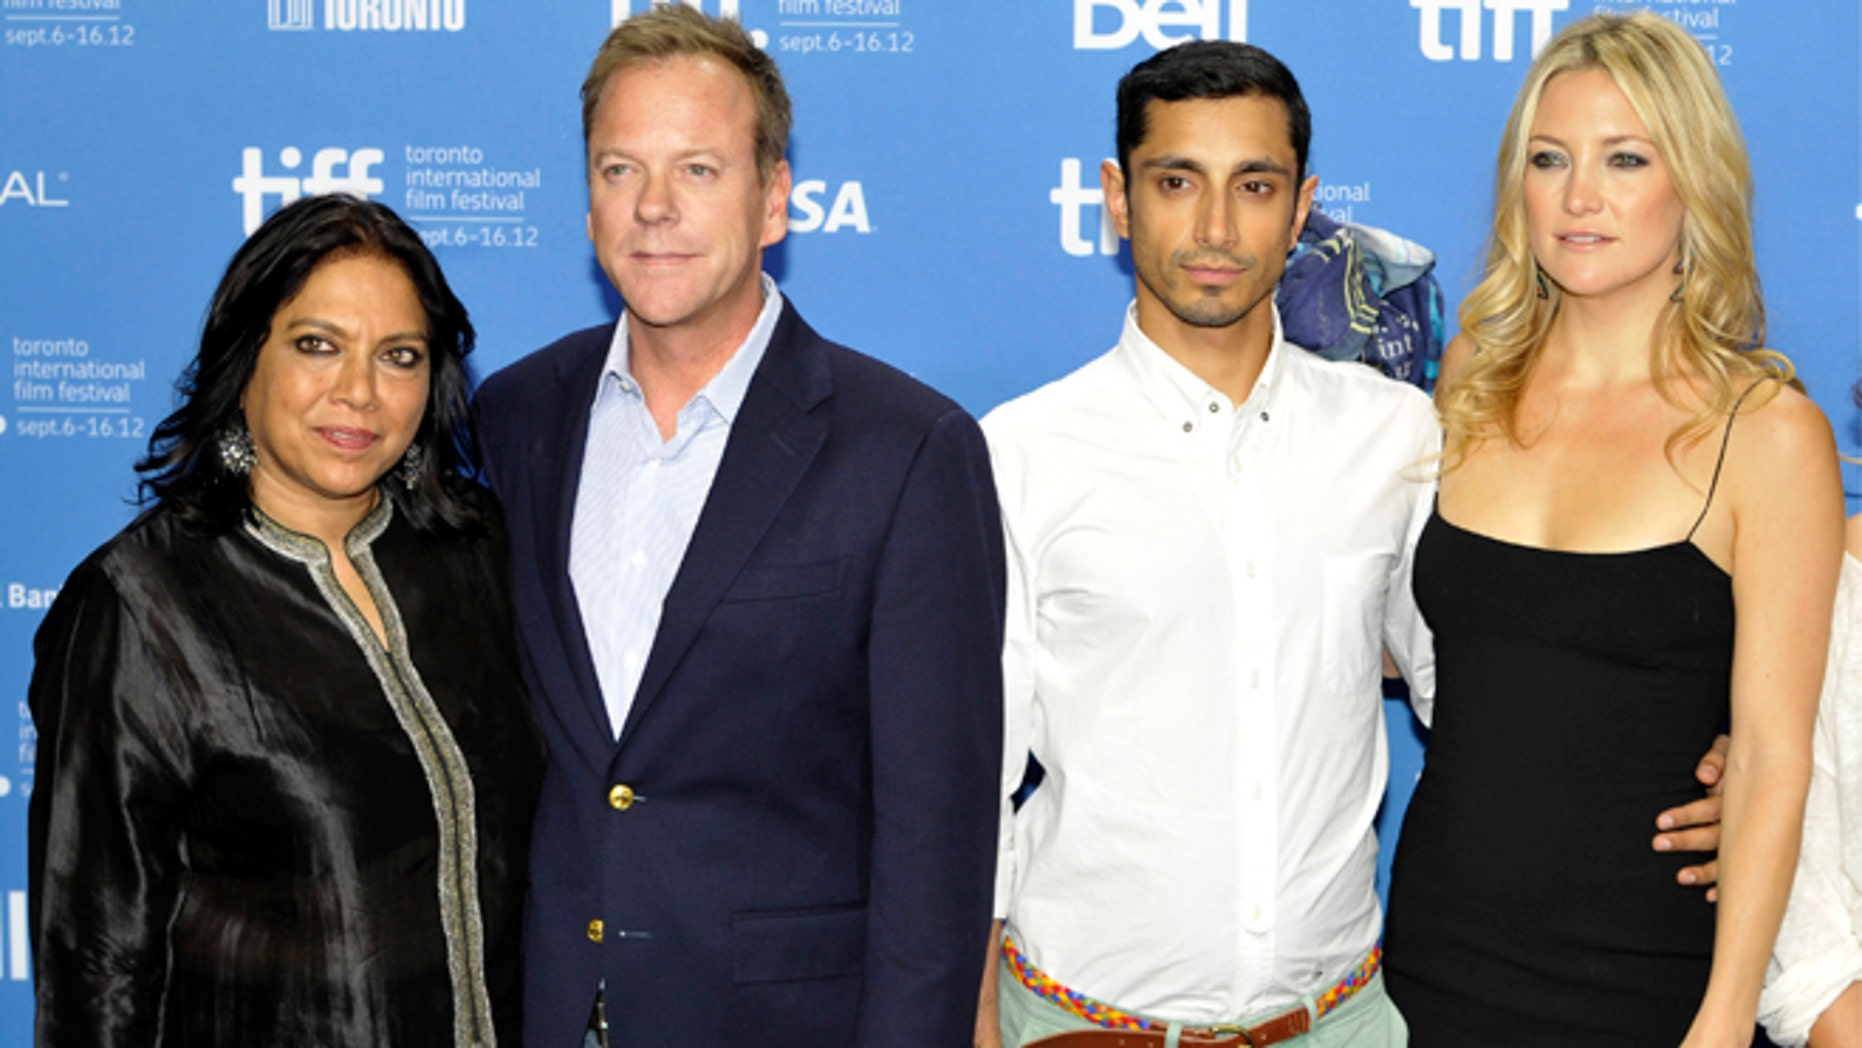 """Director Mira Nair, left, poses with cast members (from left) Kiefer Sutherland, Riz Ahmed and Kate Hudson at a news conference for their film """"The Reluctant Fundamentalist"""" at the 37th Toronto International Film Festival September 9, 2012."""